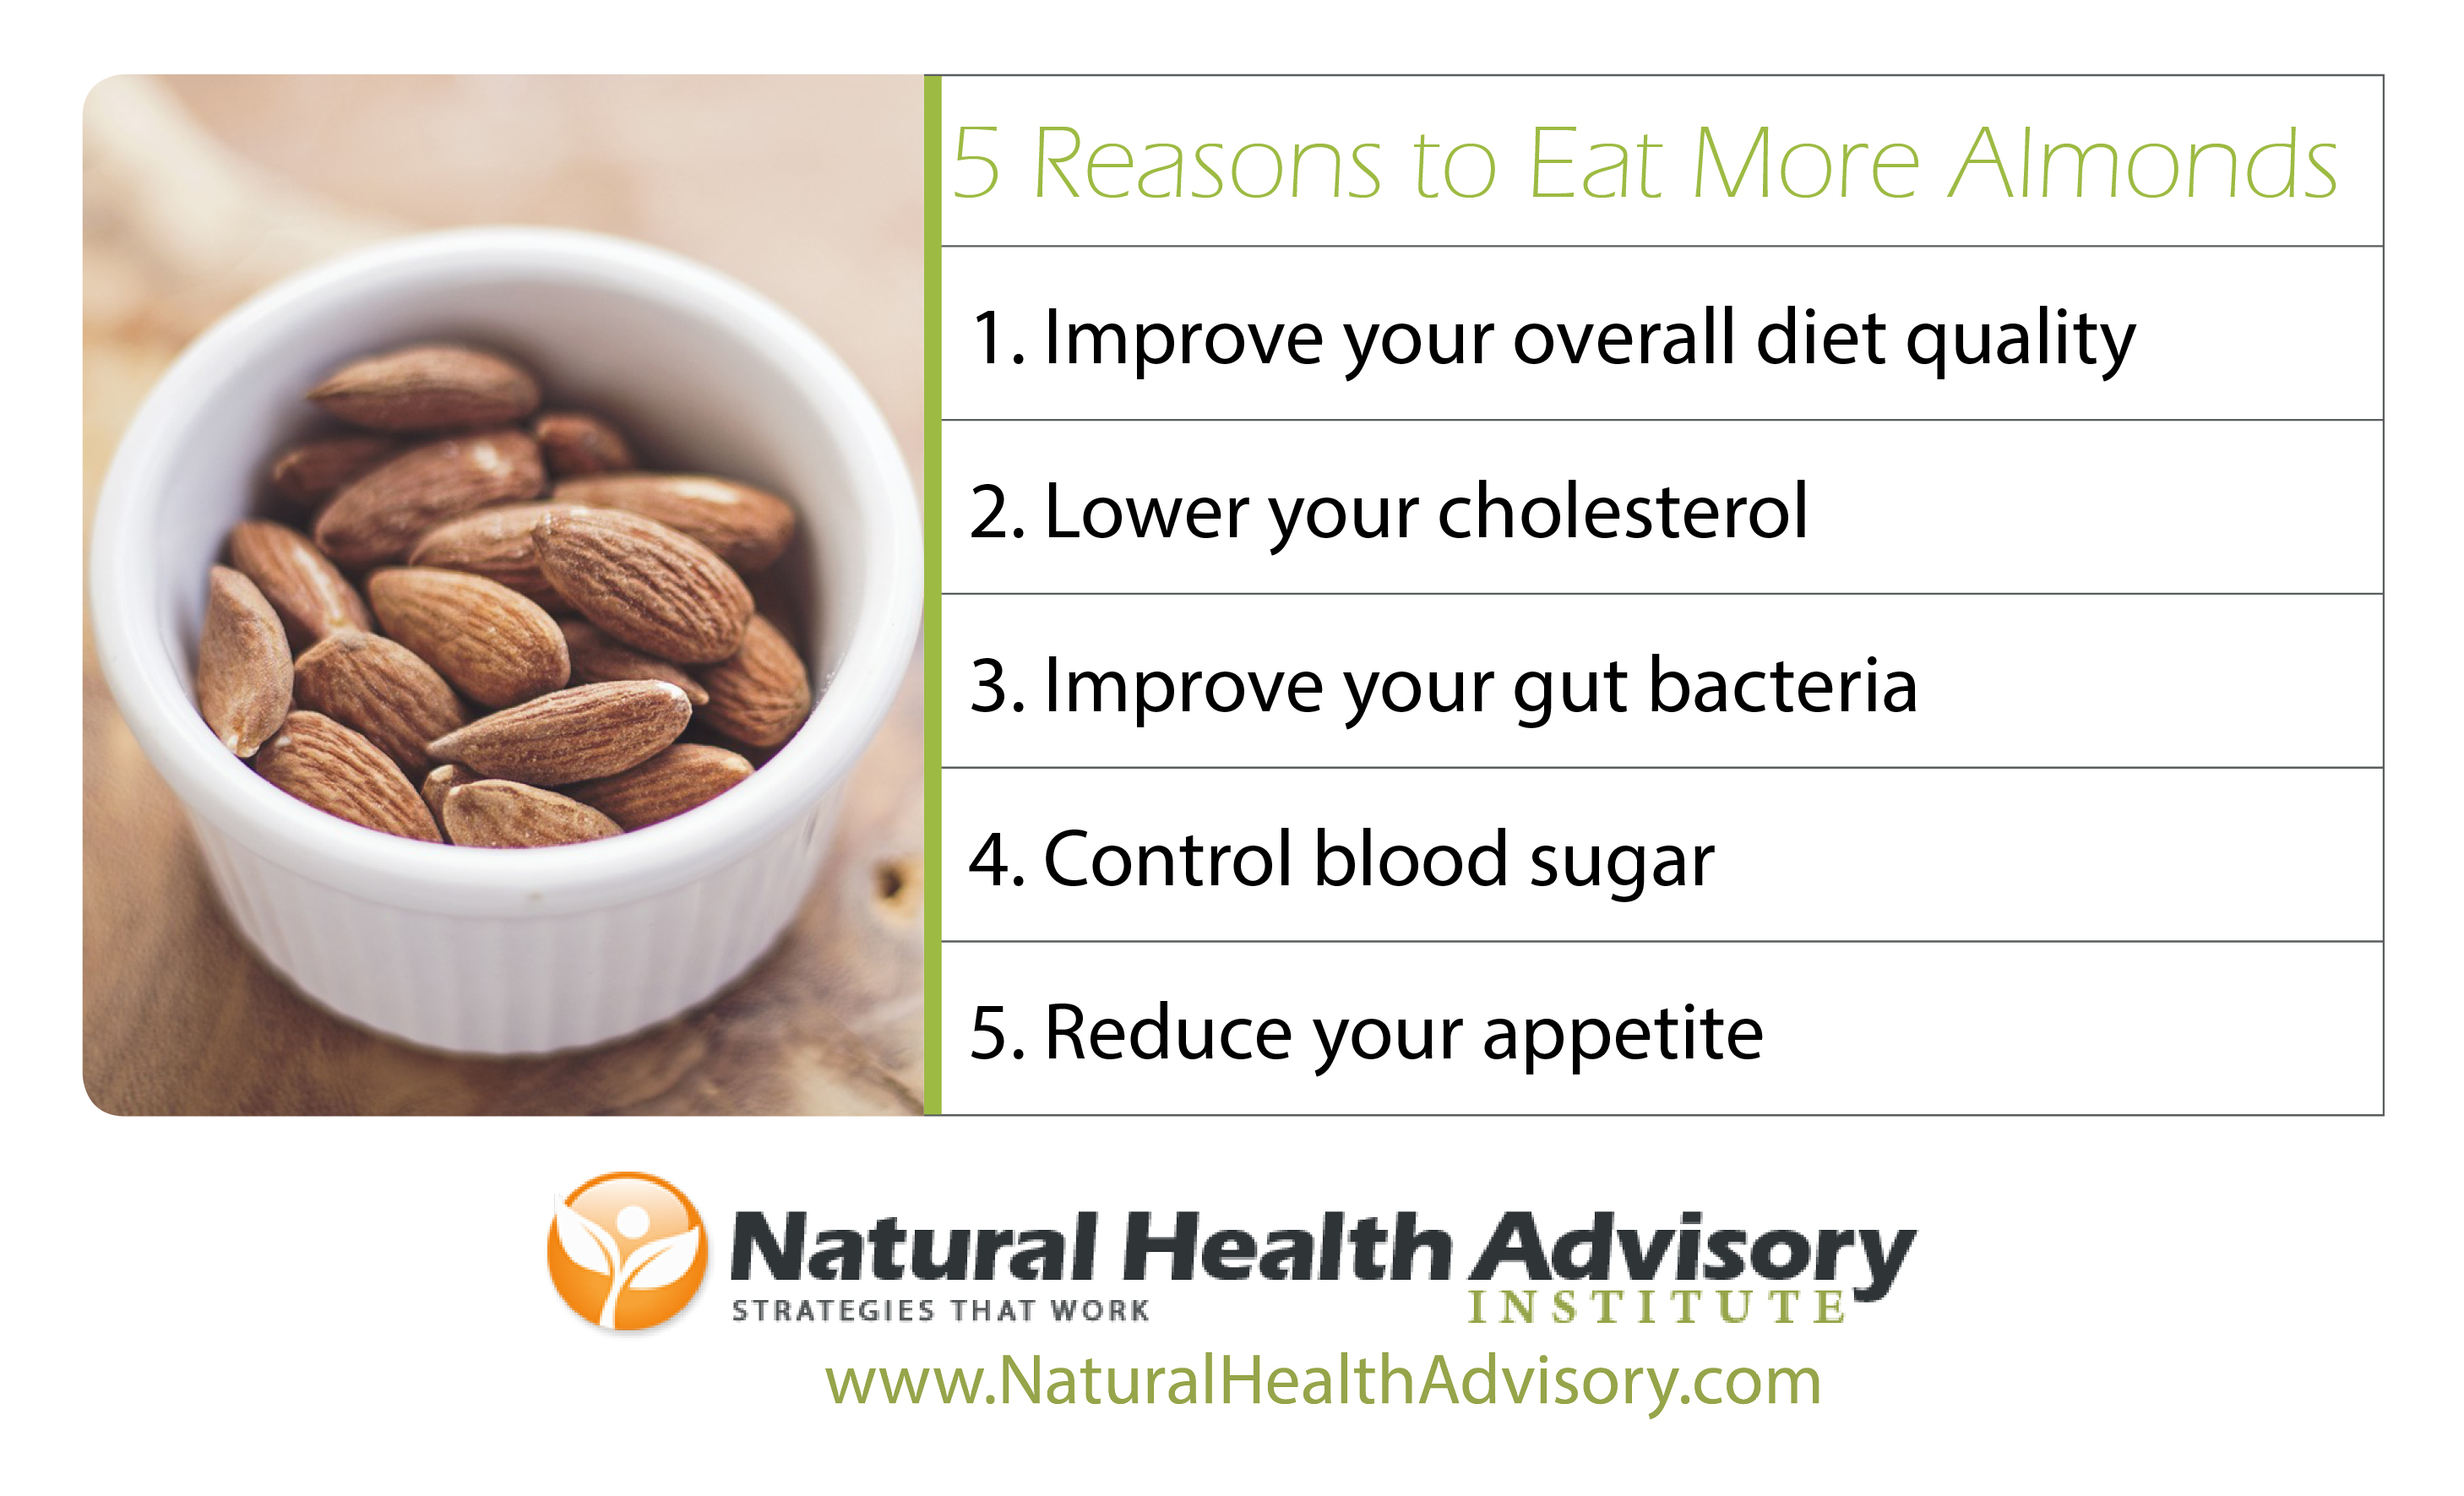 5 Reasons to Love Almonds